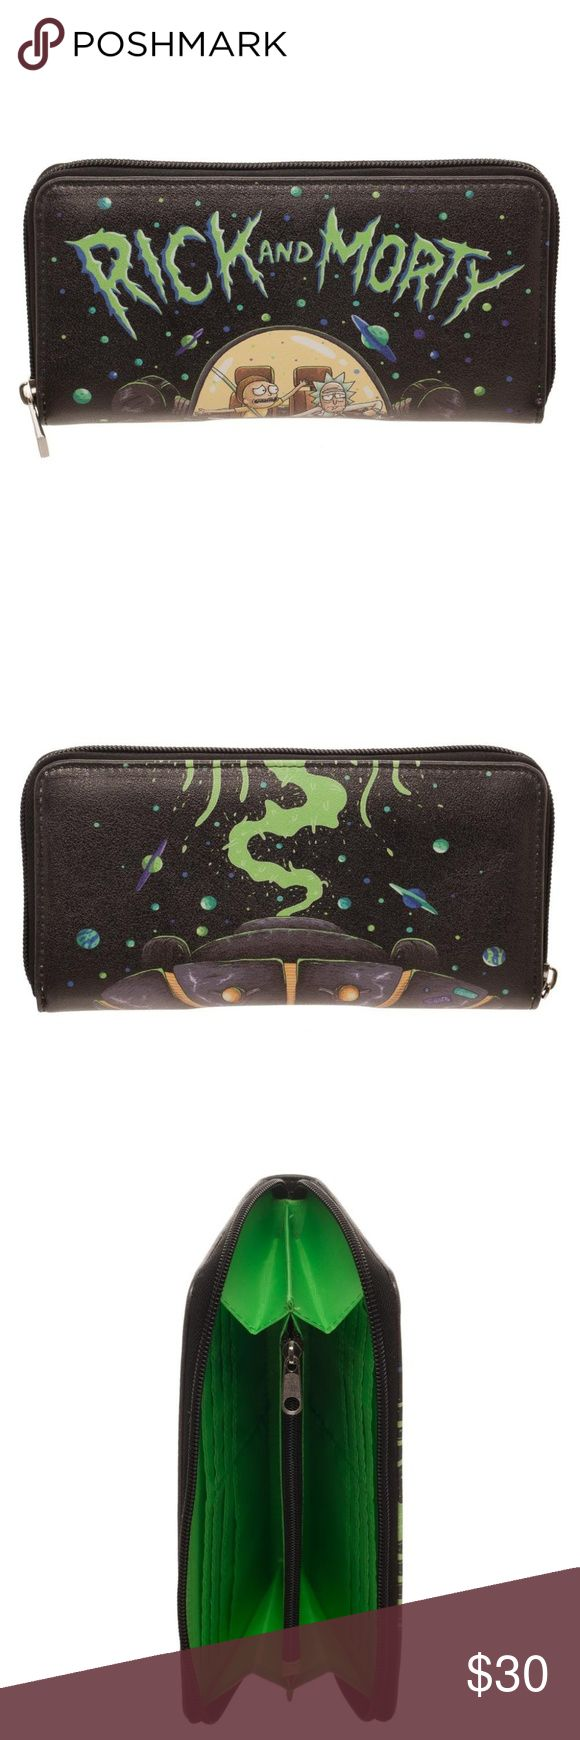 """Rick and Morty Zip Around Women's Wallet Official This is for 1 Rick and Morty themed zip-around wallet.   Very nice wallet that zips around.  It features Rick and Morty in their ship.  Inside there's plenty of room for cards and cash.  Produced by Bioworld.  Officially Licensed.  Theme: Rick and Morty - Officially Licensed Pattern:   Rick and Morty in their Ship Style:  Zipper Wallet Size: Approx. 7.5"""" x 4"""" Brand: Bioworld  Perfect for any fan of Rick and Morty!  Makes a great gift…"""